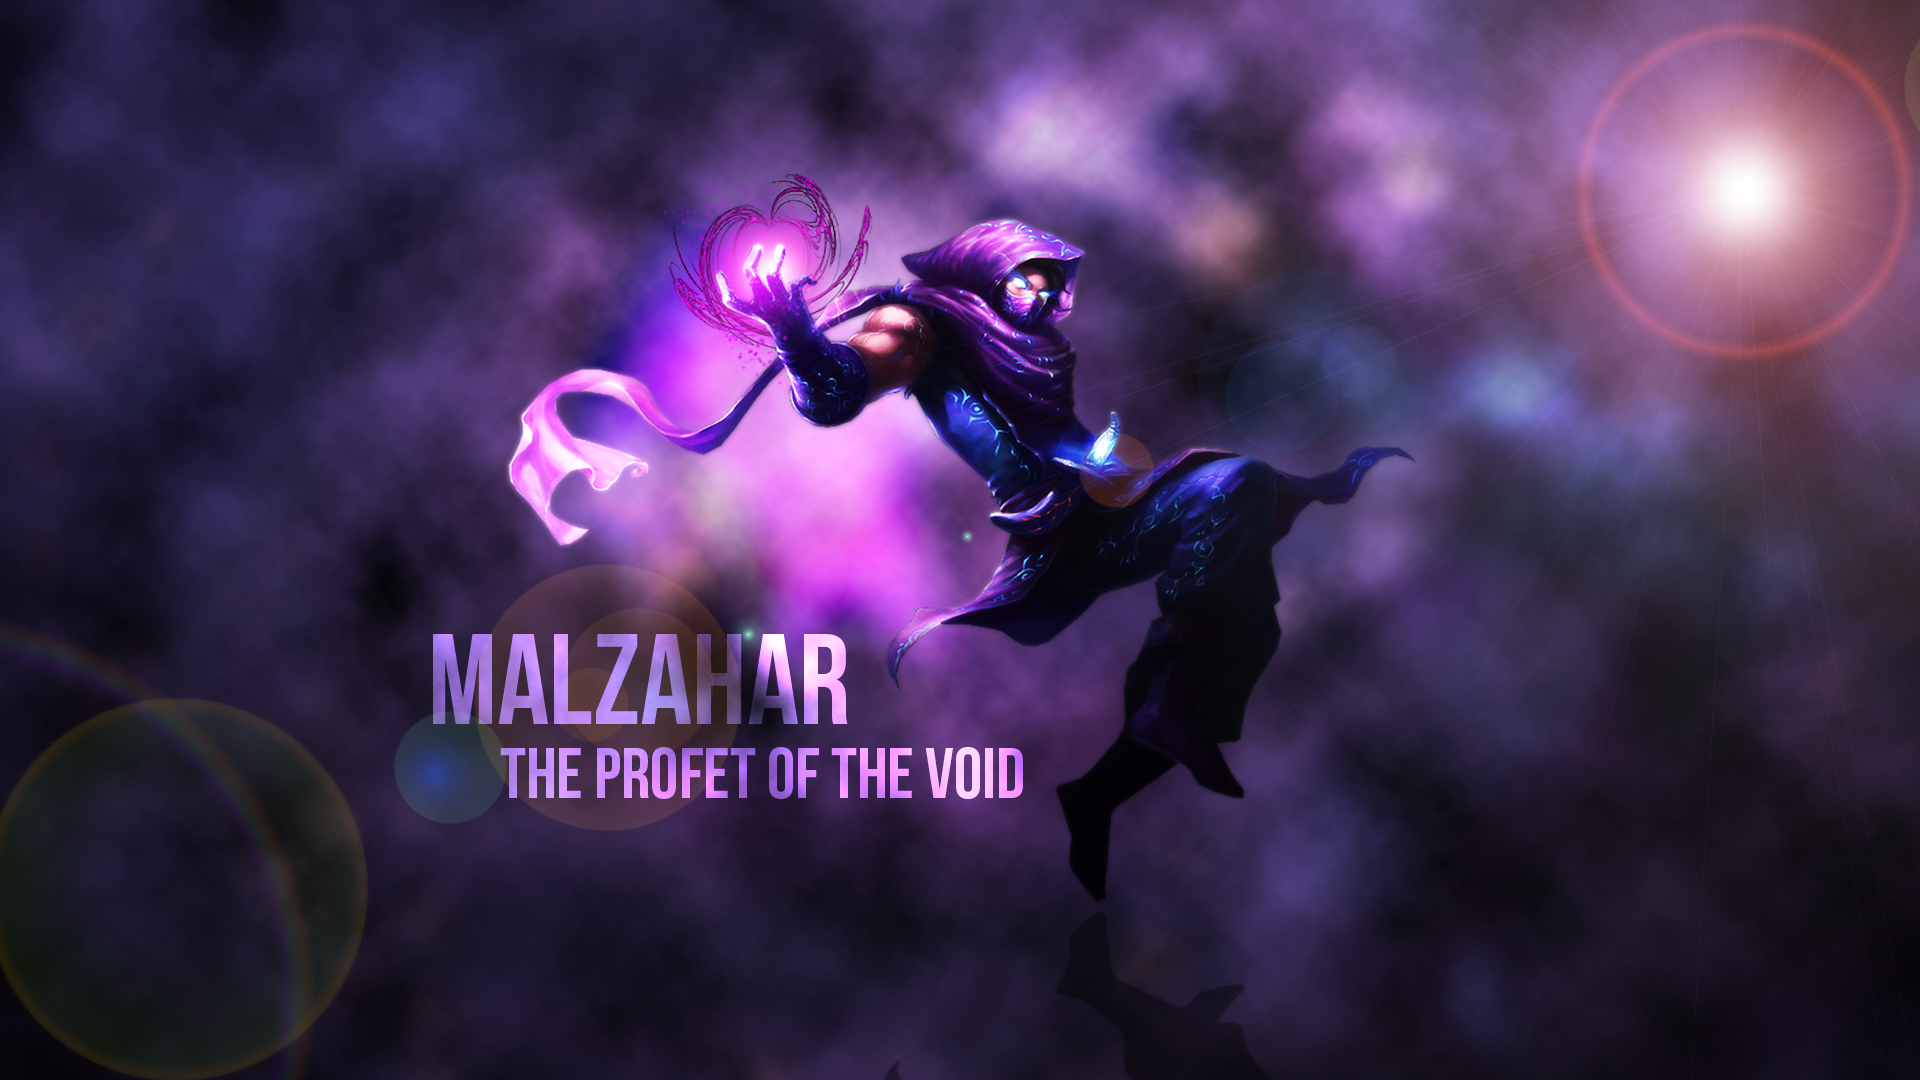 Malzahar wallpaper